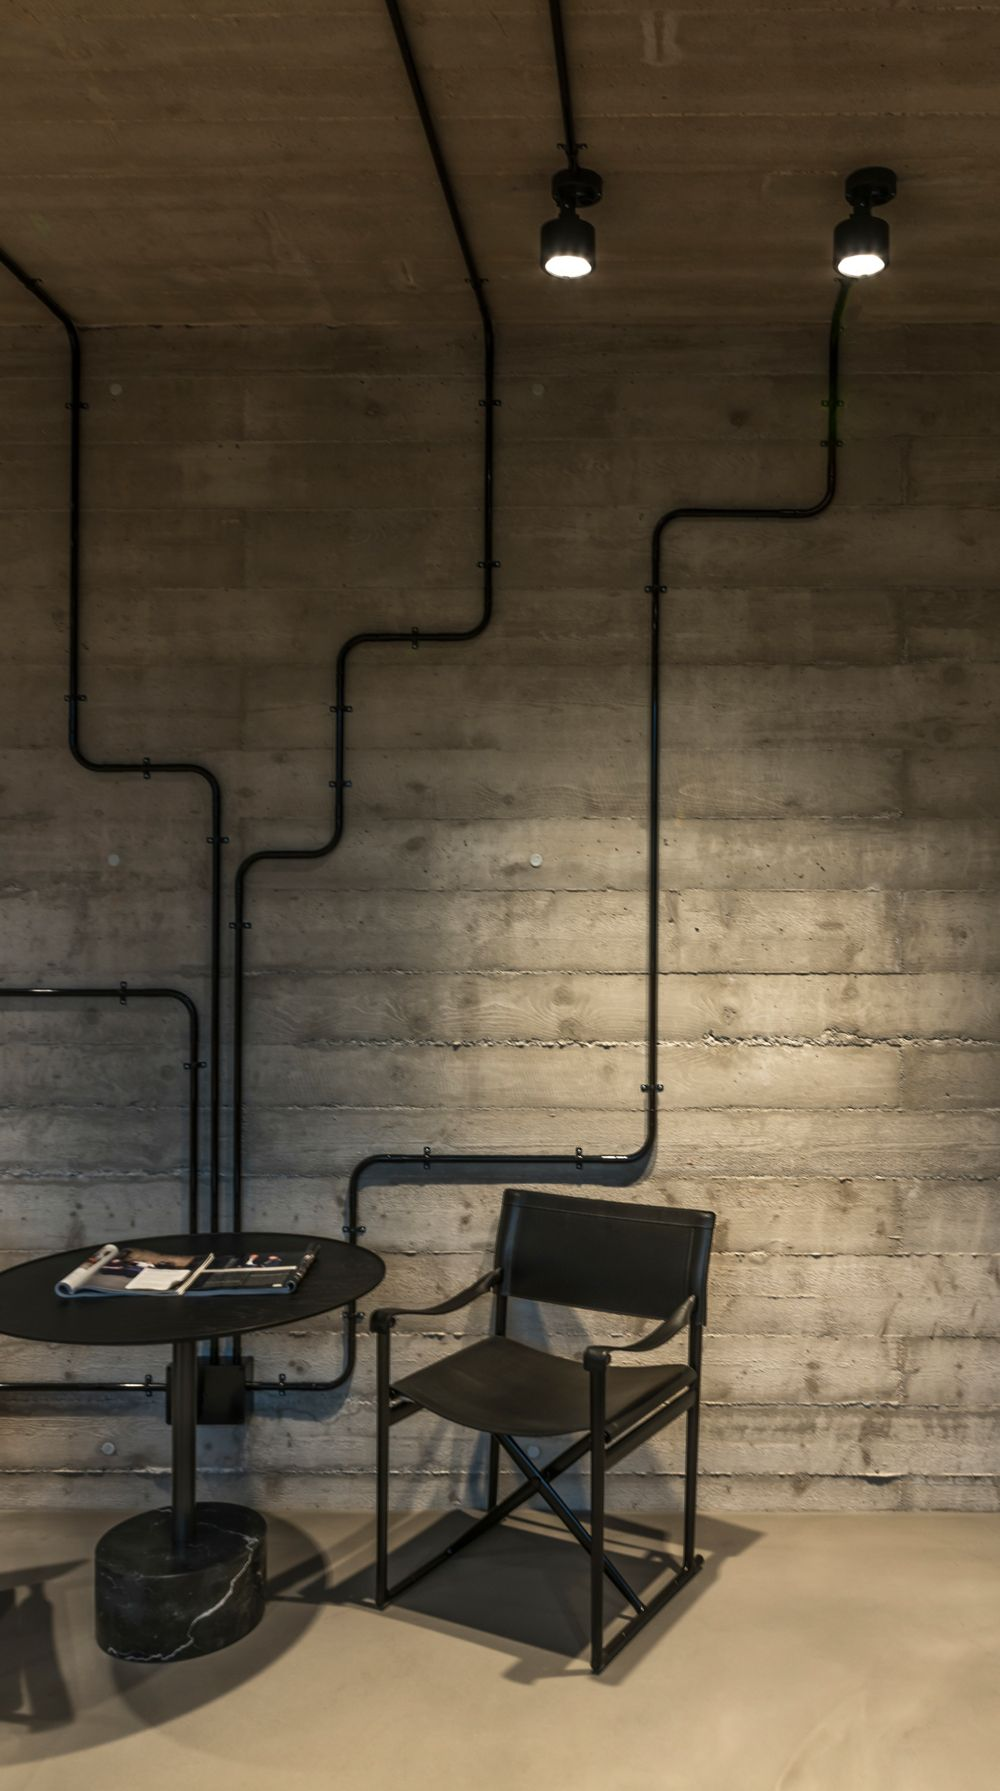 Interior Wall Surface Wiring Opinions About Diagram Schematics Diagrams U2022 Rh Parntesis Co Panels Textured Surfaces